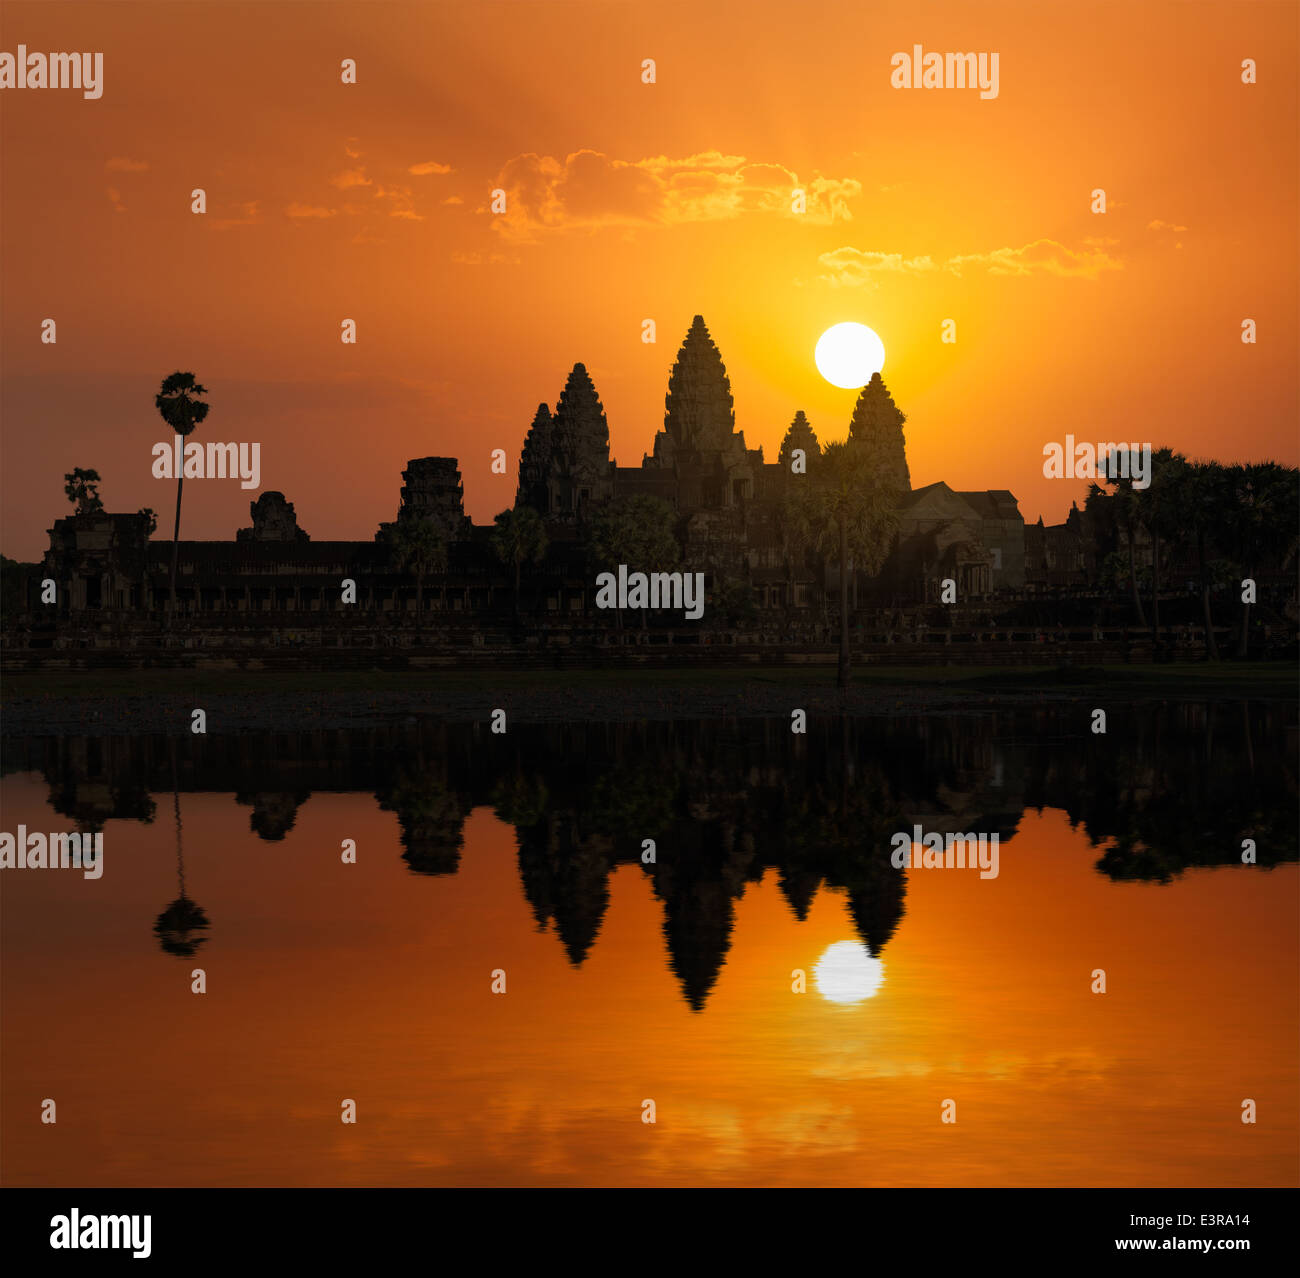 Cambodia landmark Angkor Wat with reflection in water on sunrise - Stock Image